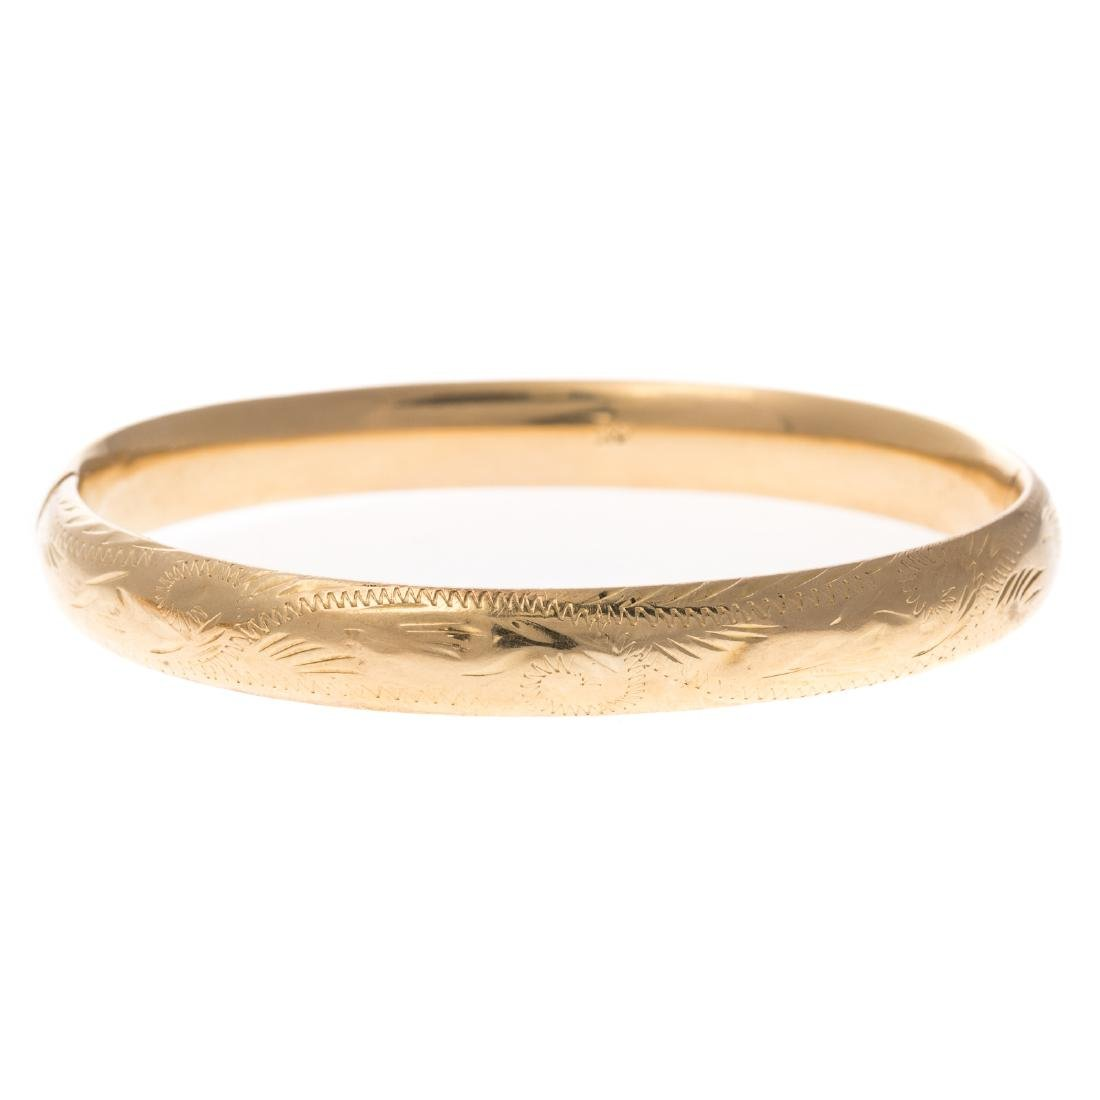 Two Lady's Bracelets in 14K Gold - 6